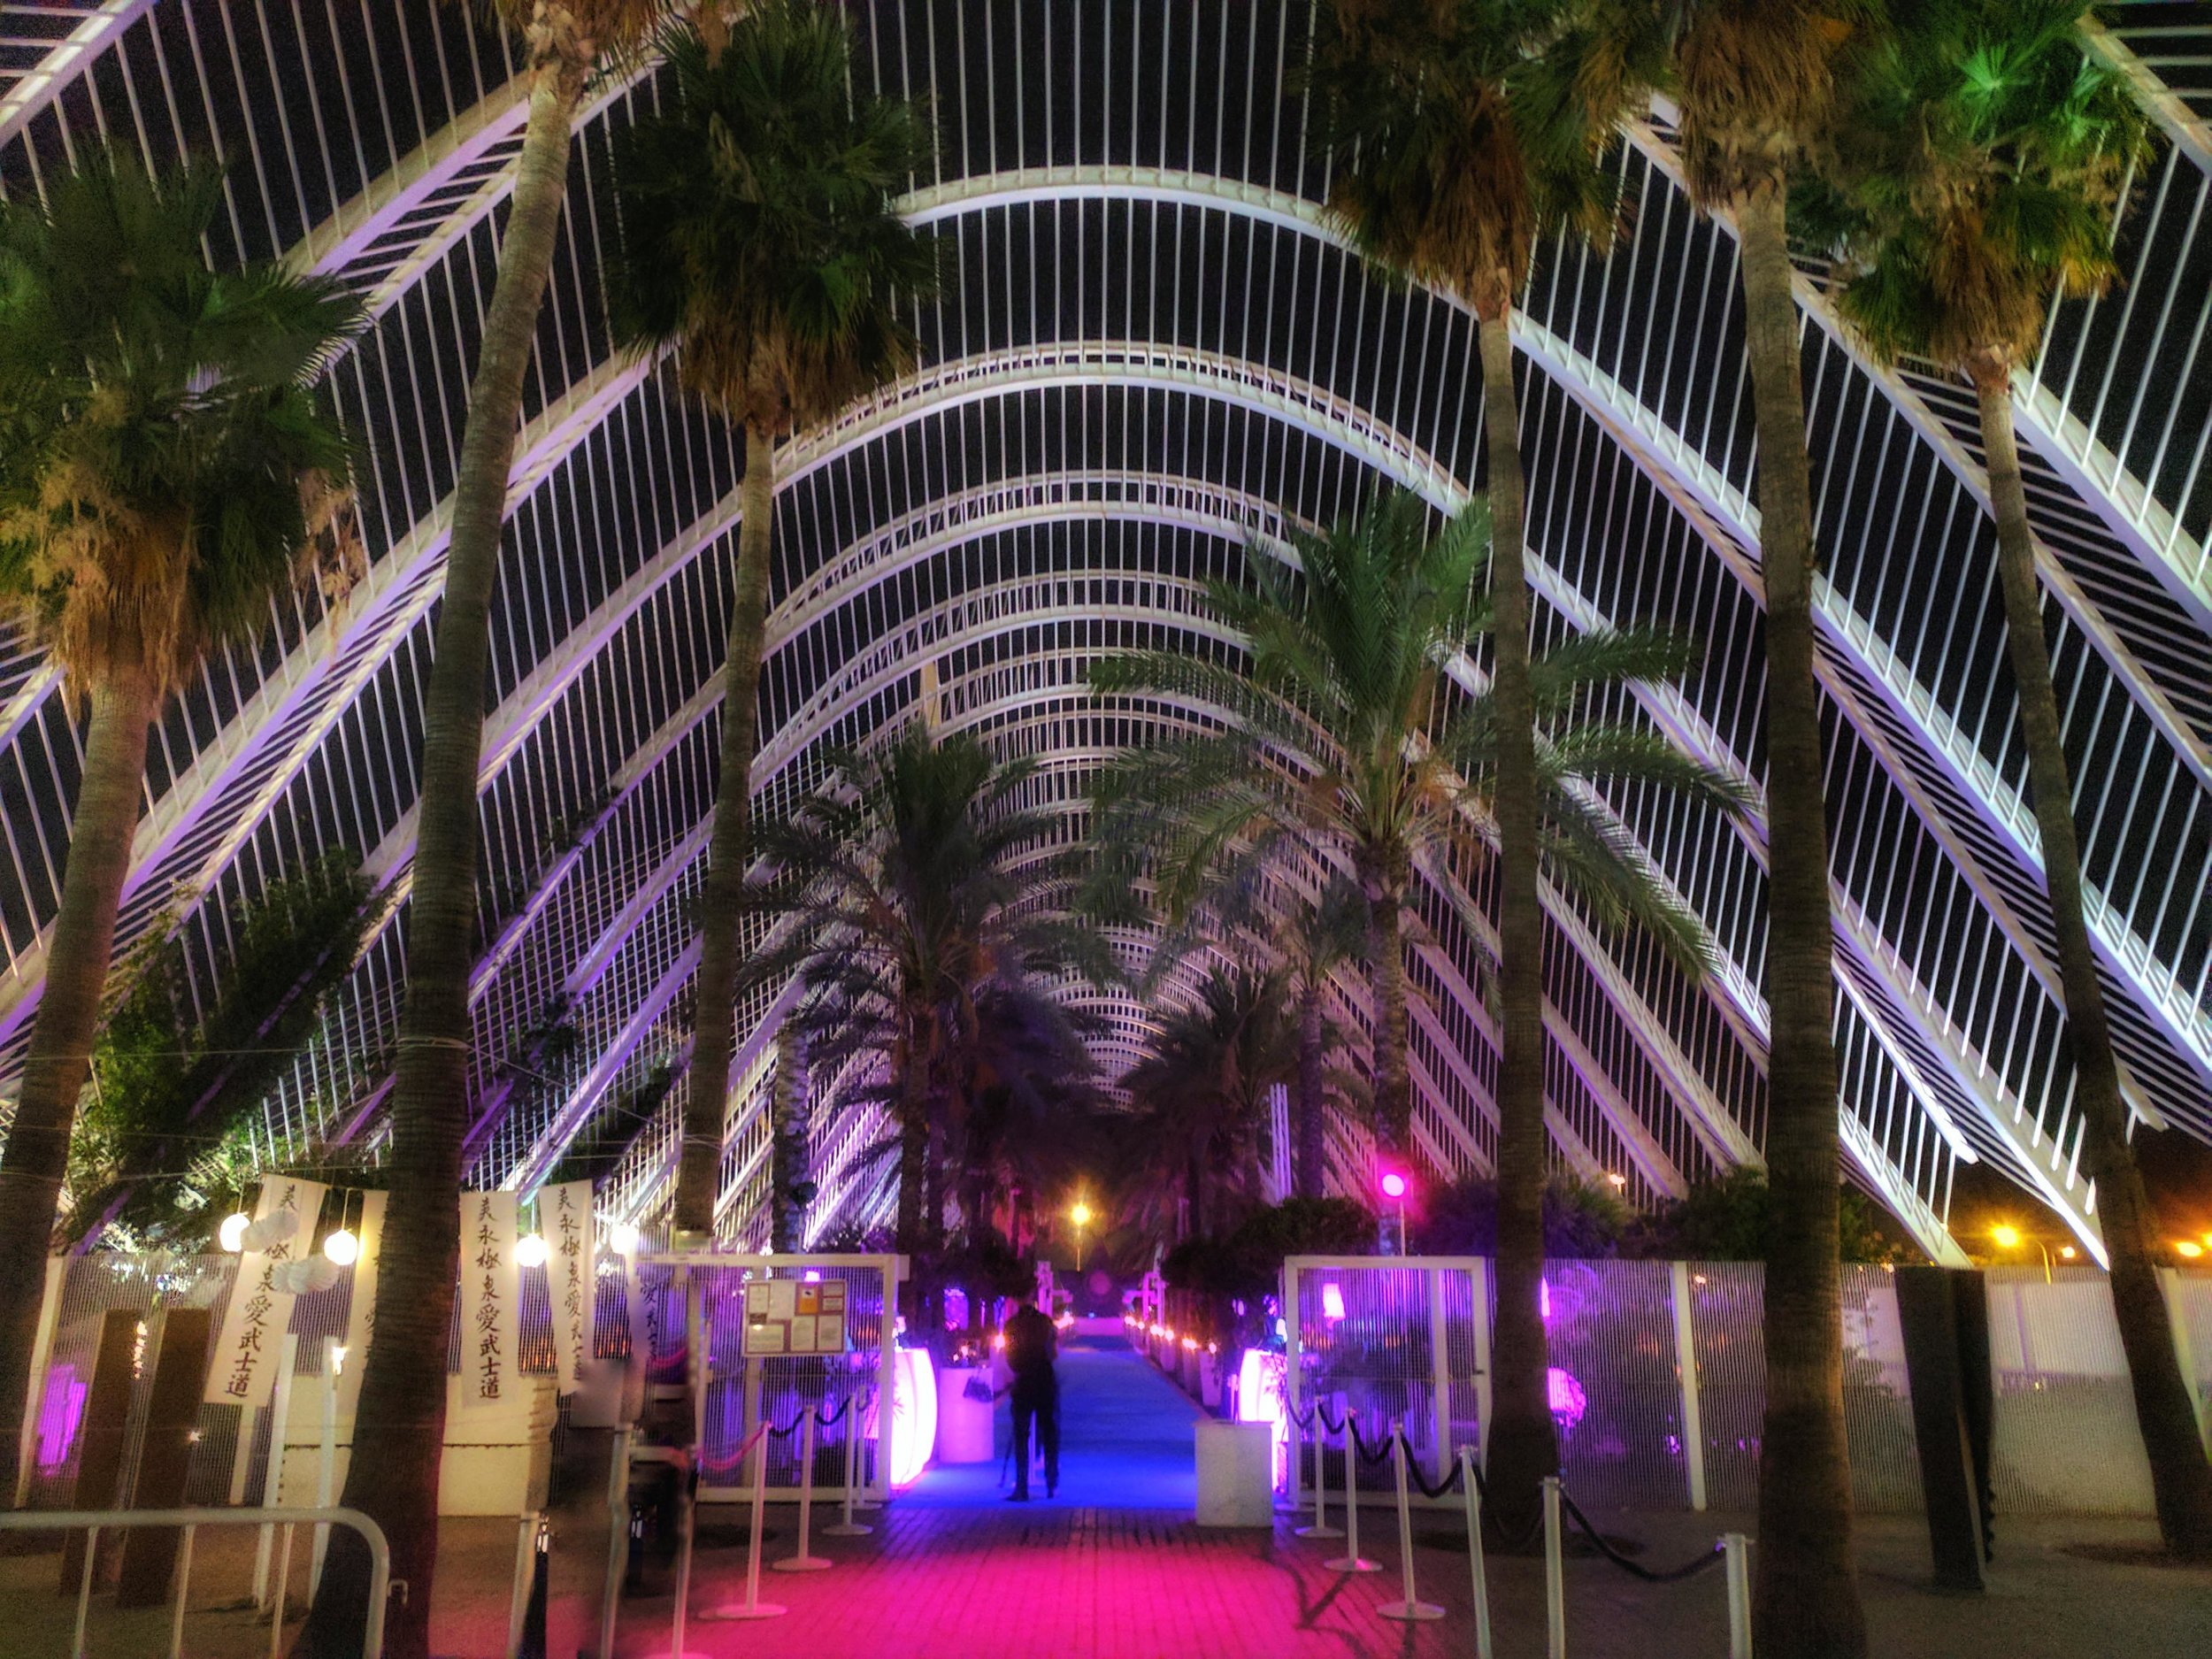 Night Time at the City of Arts of Sciences